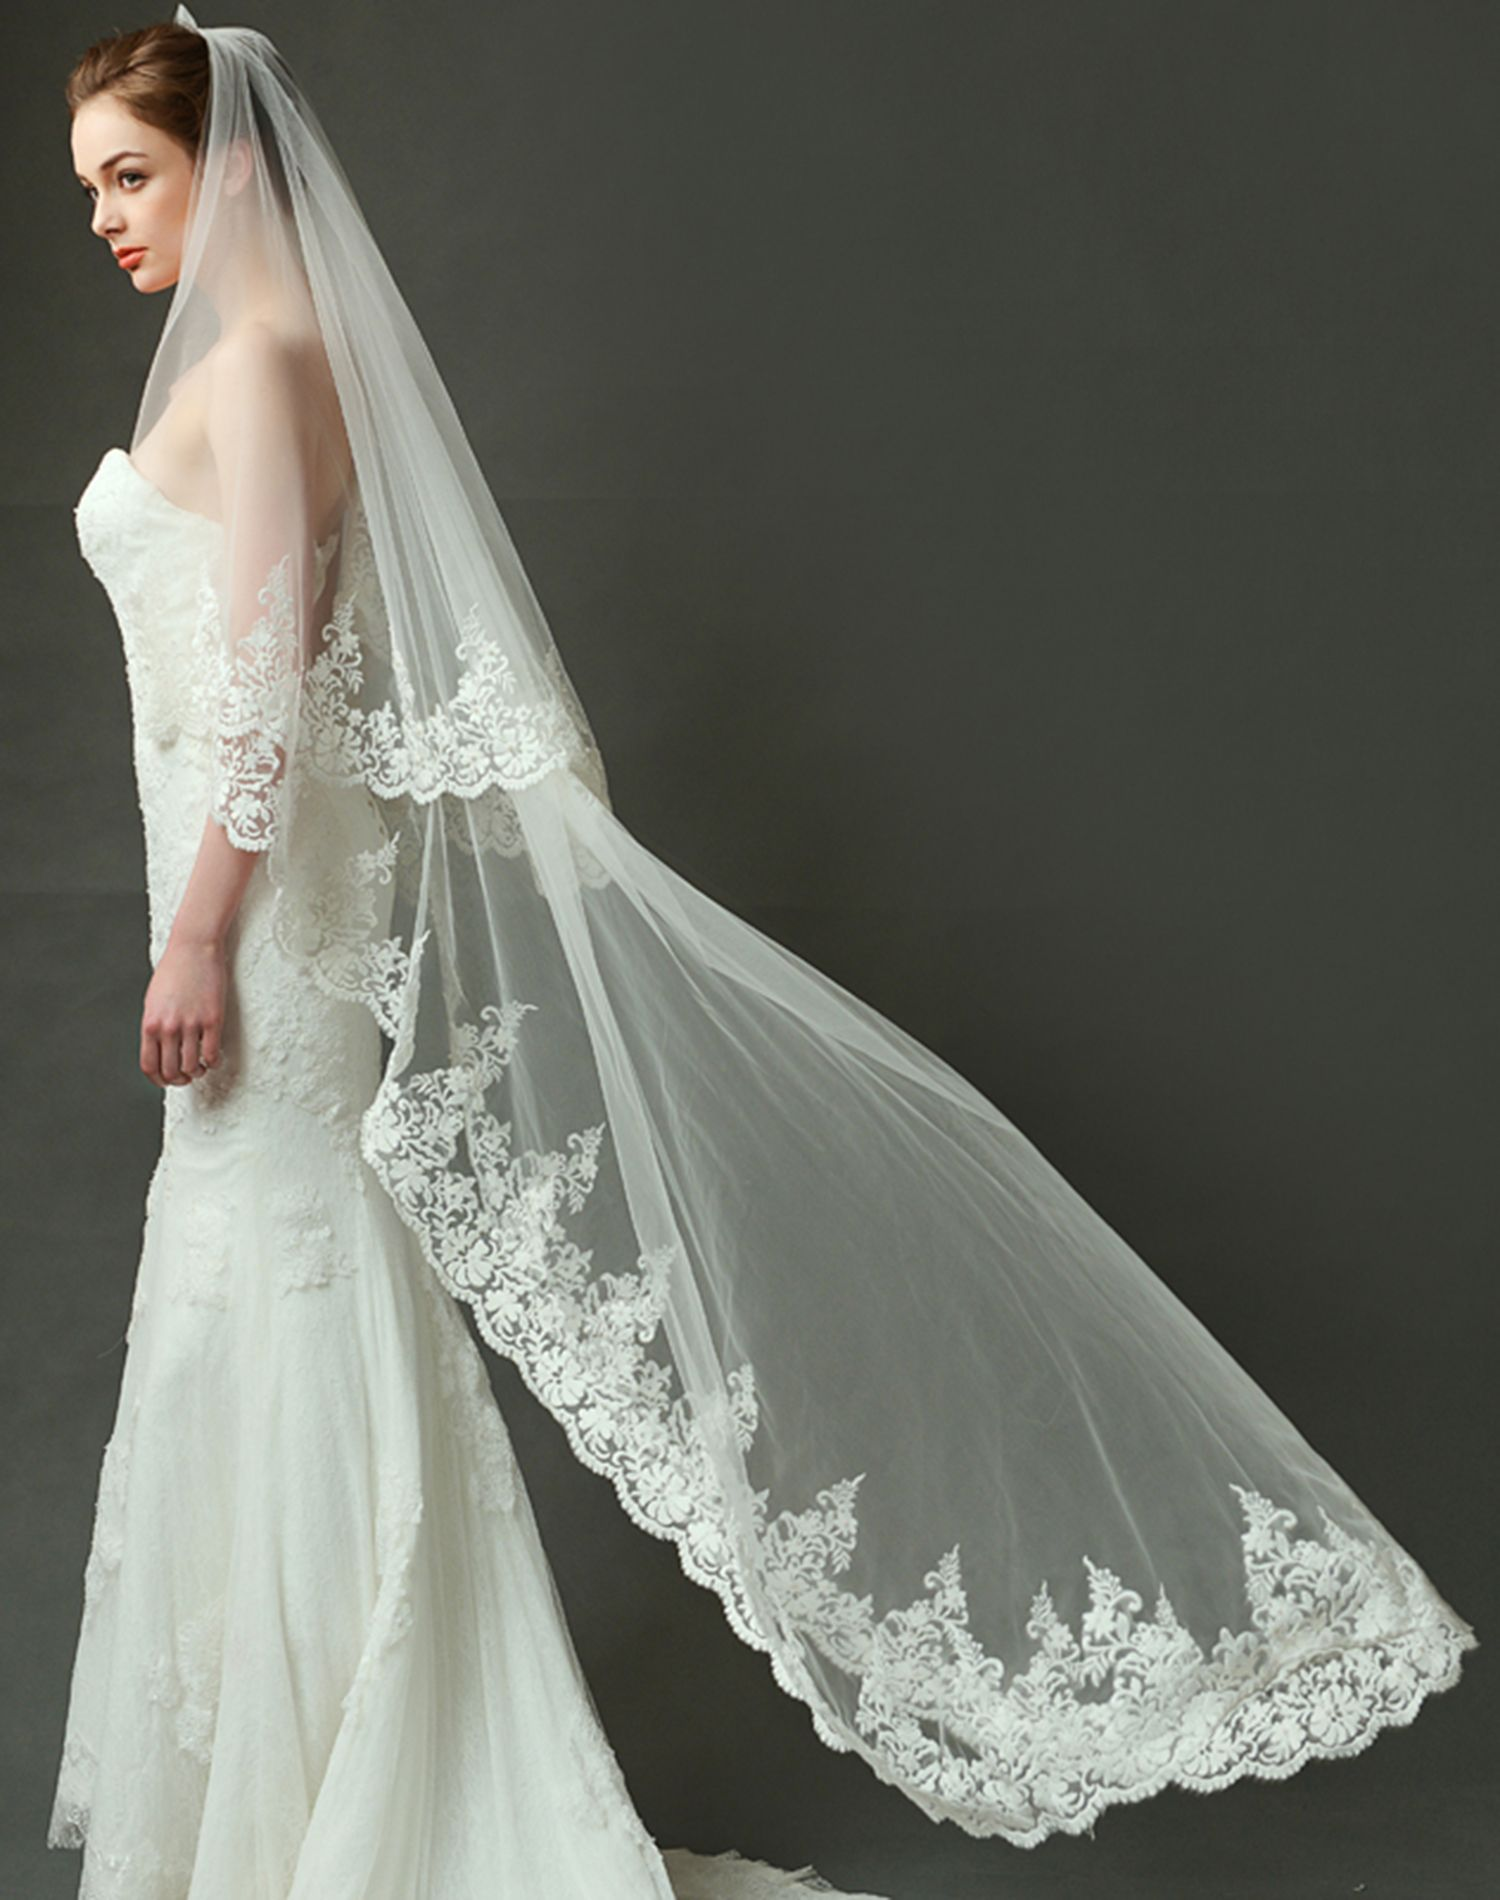 LynnBridal Scalloped Cathedral Length Wedding Veil with